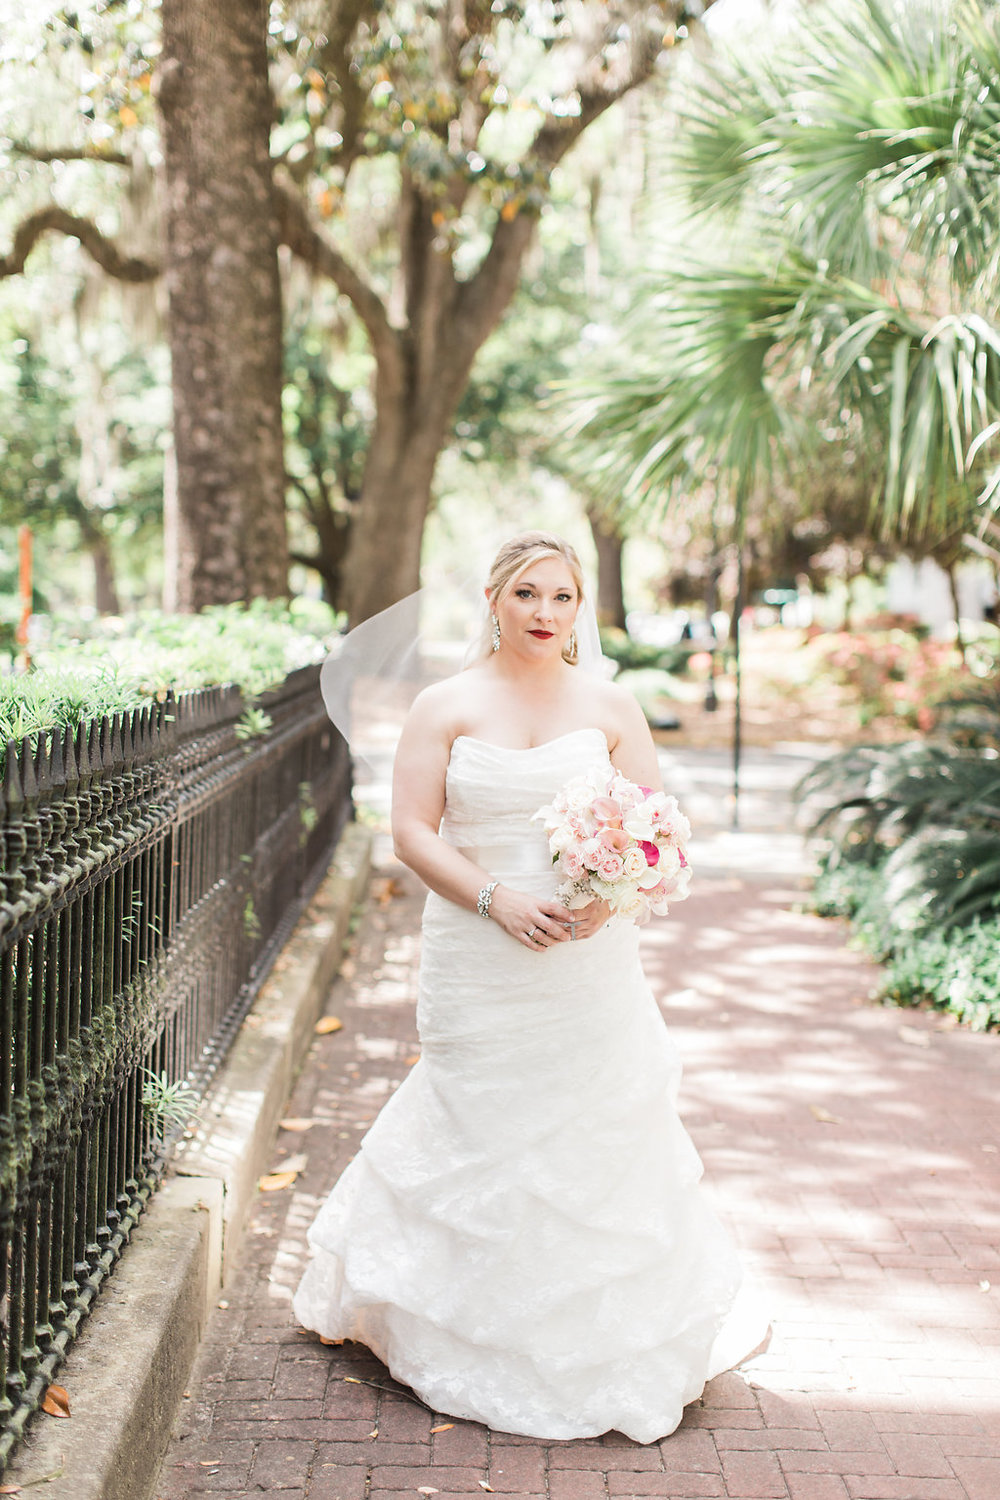 kristin-and-darren-wedding-soho-south-cafe-wormsloe-apt-b-photography-savannah-wedding-planner-savannah-weddings-southern-weddings-best-savannah-wedding-planner-6.JPG